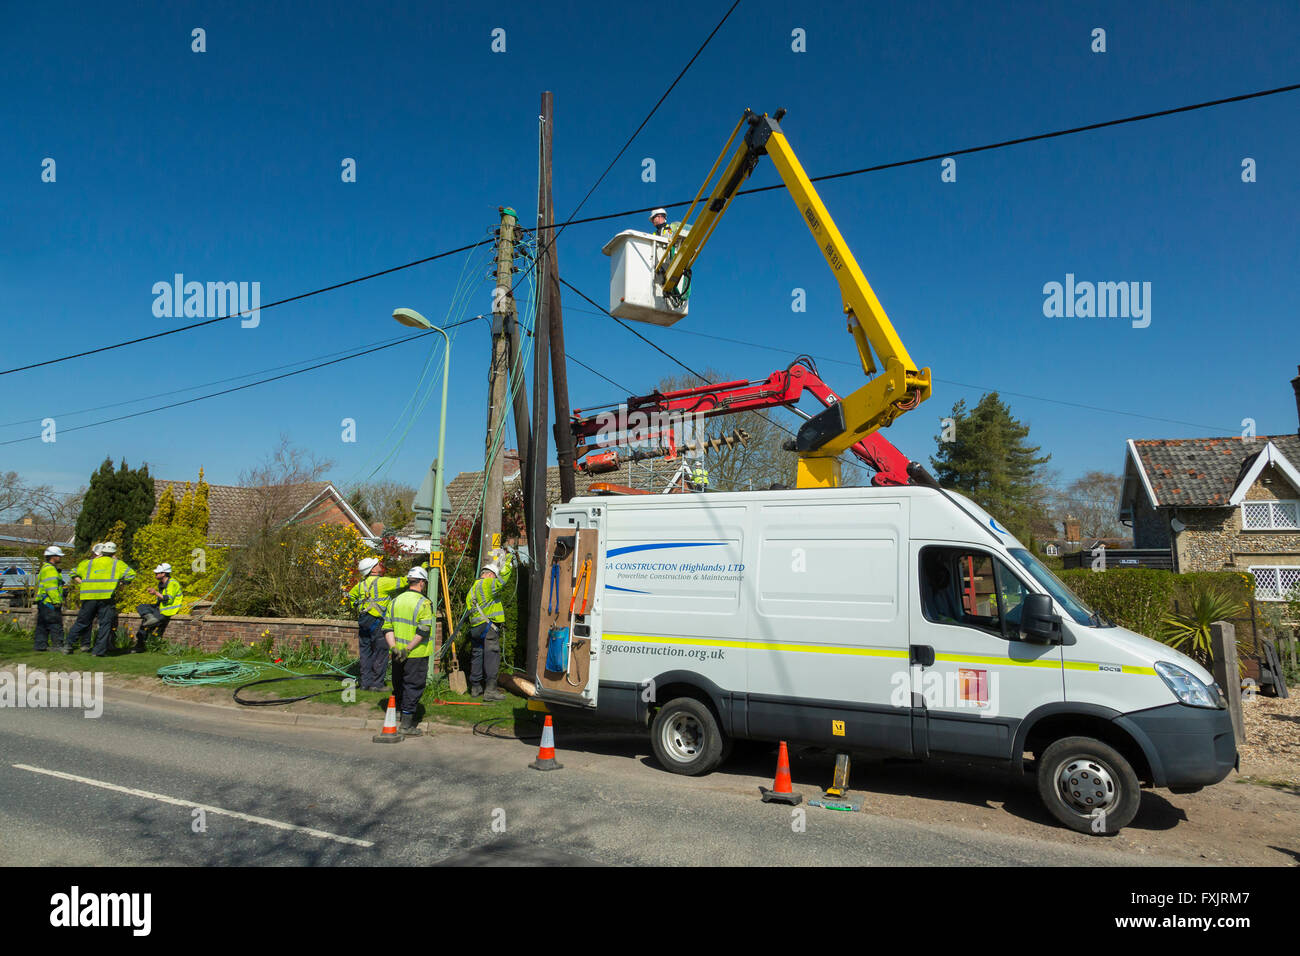 engineers working on electricity supply pole - Stock Image